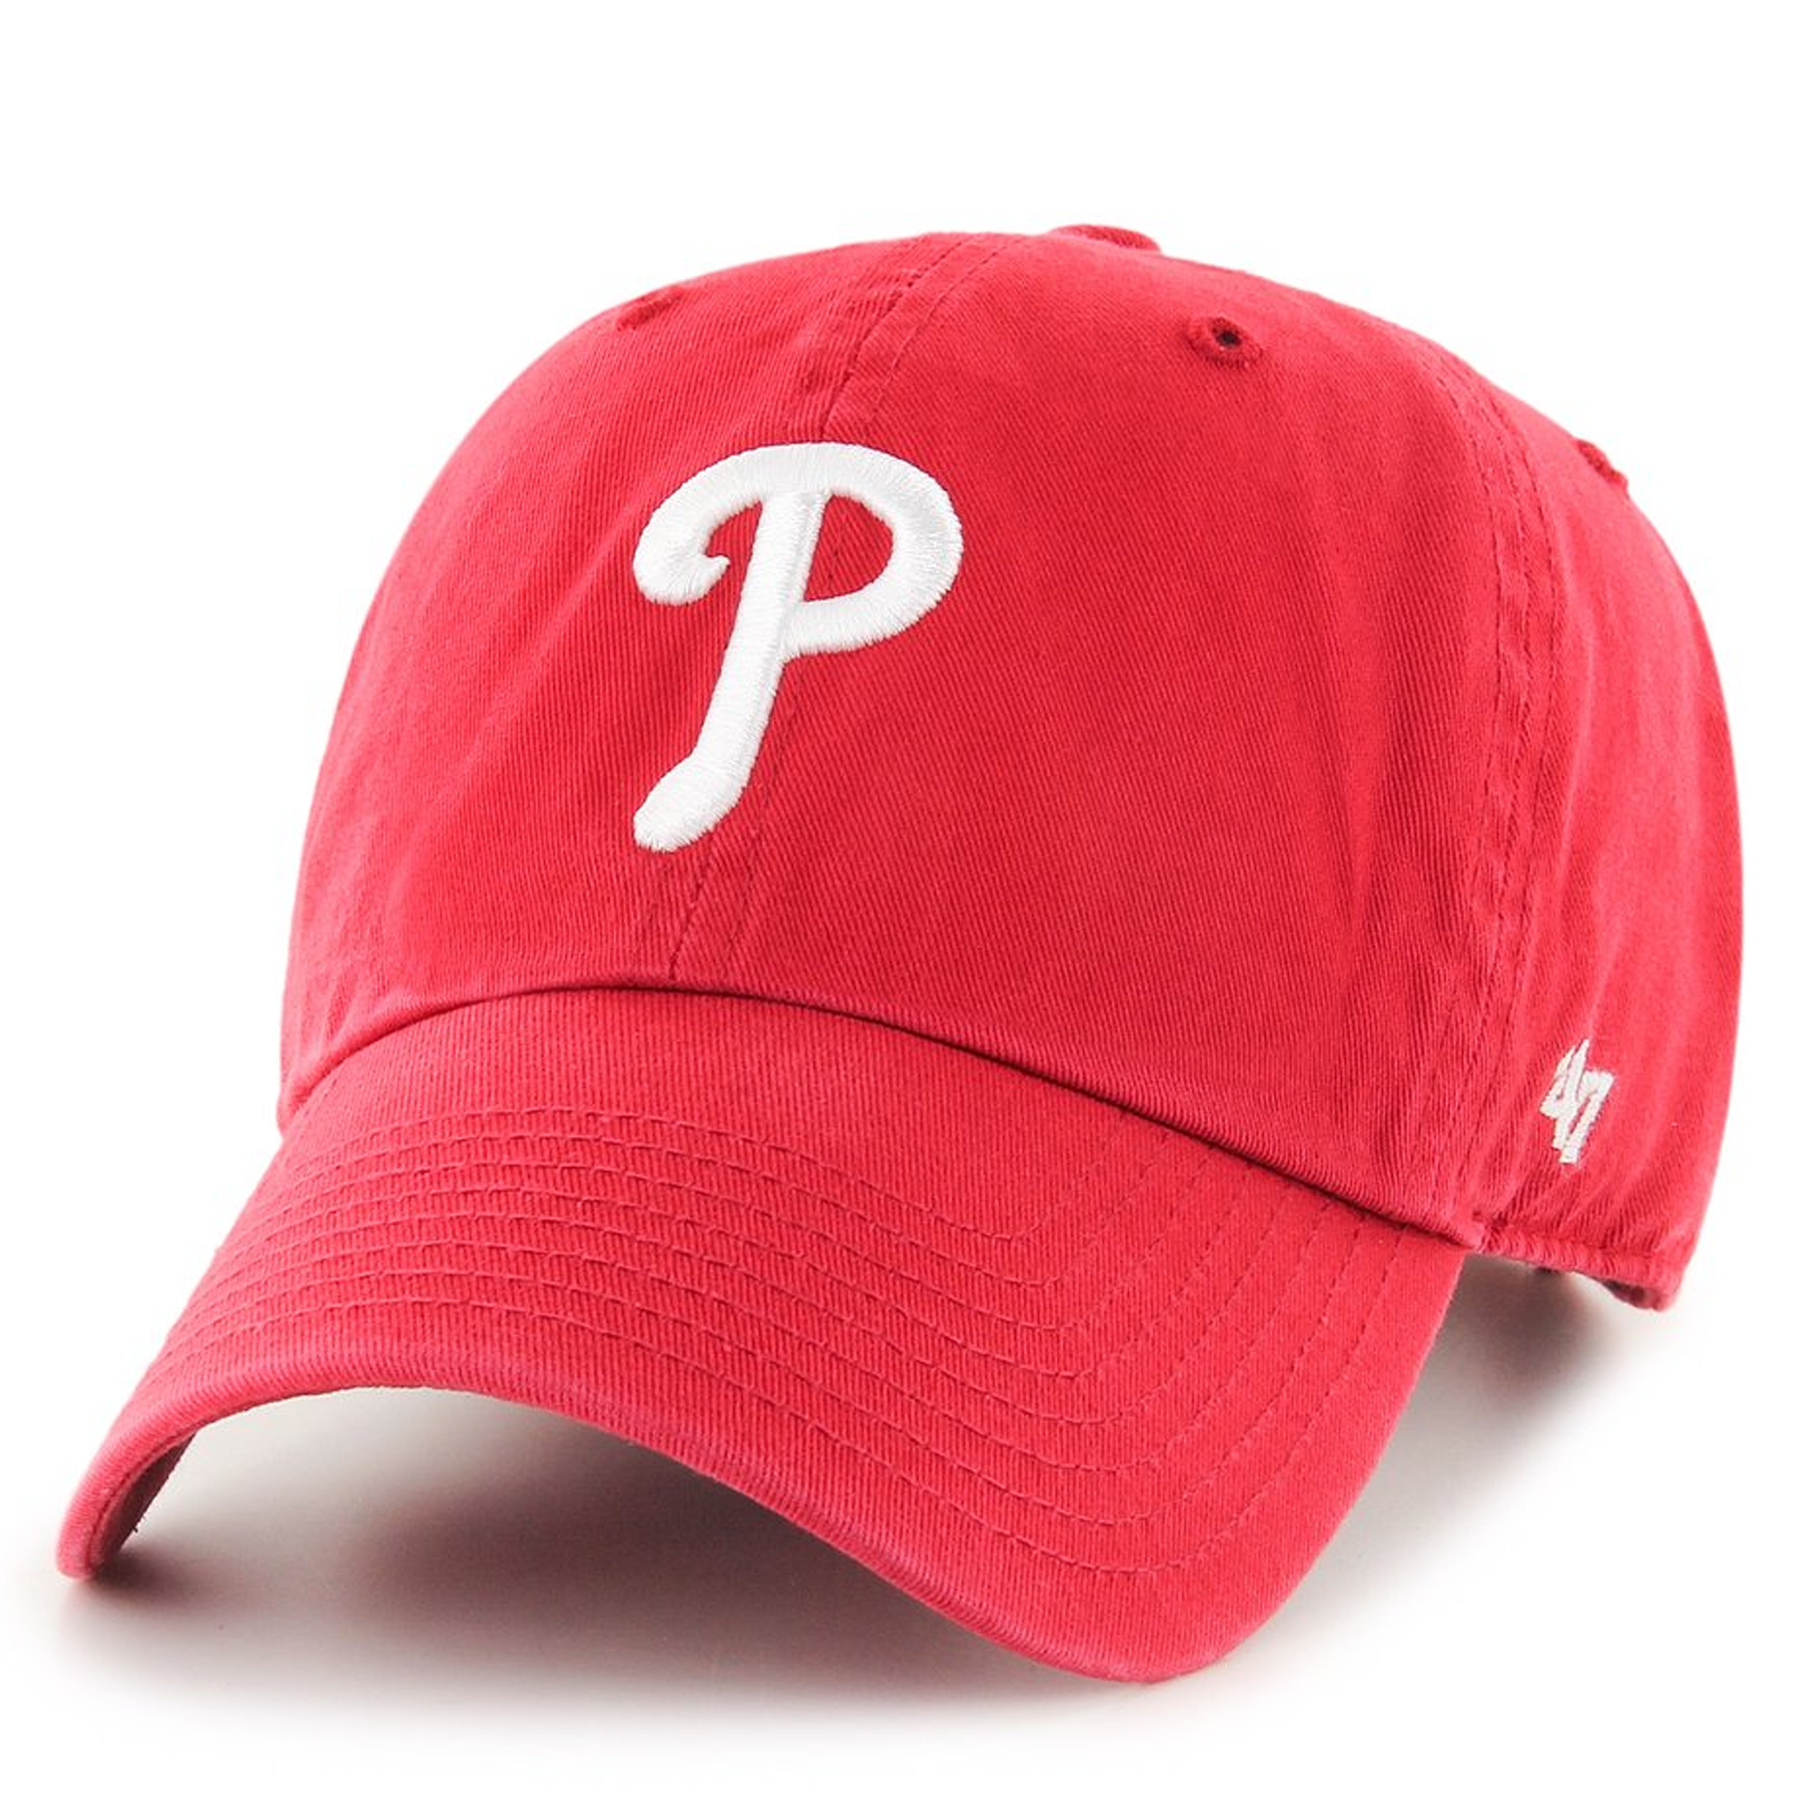 f9810285c60 on the front of the youth philadelphia phillies red dad hat is the  philadelphia phillies logo